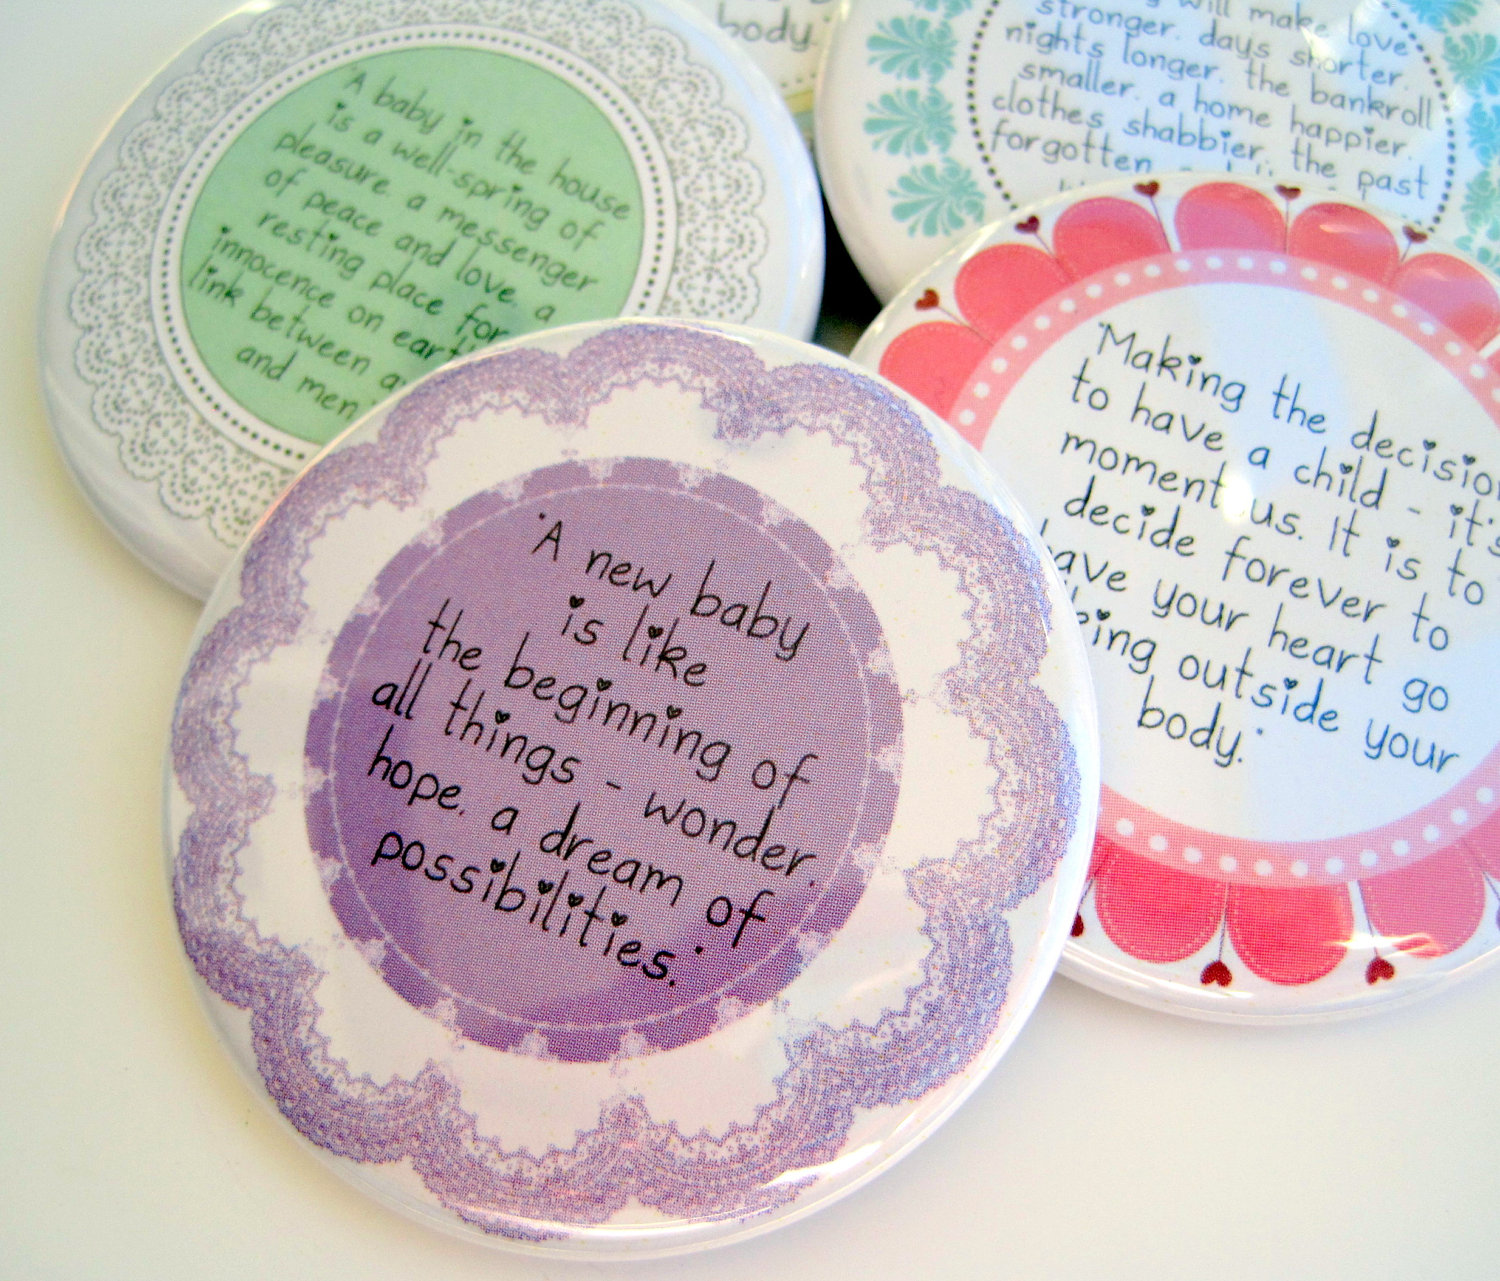 Sayings For Baby Shower: Quotes For Baby Shower Favors. QuotesGram